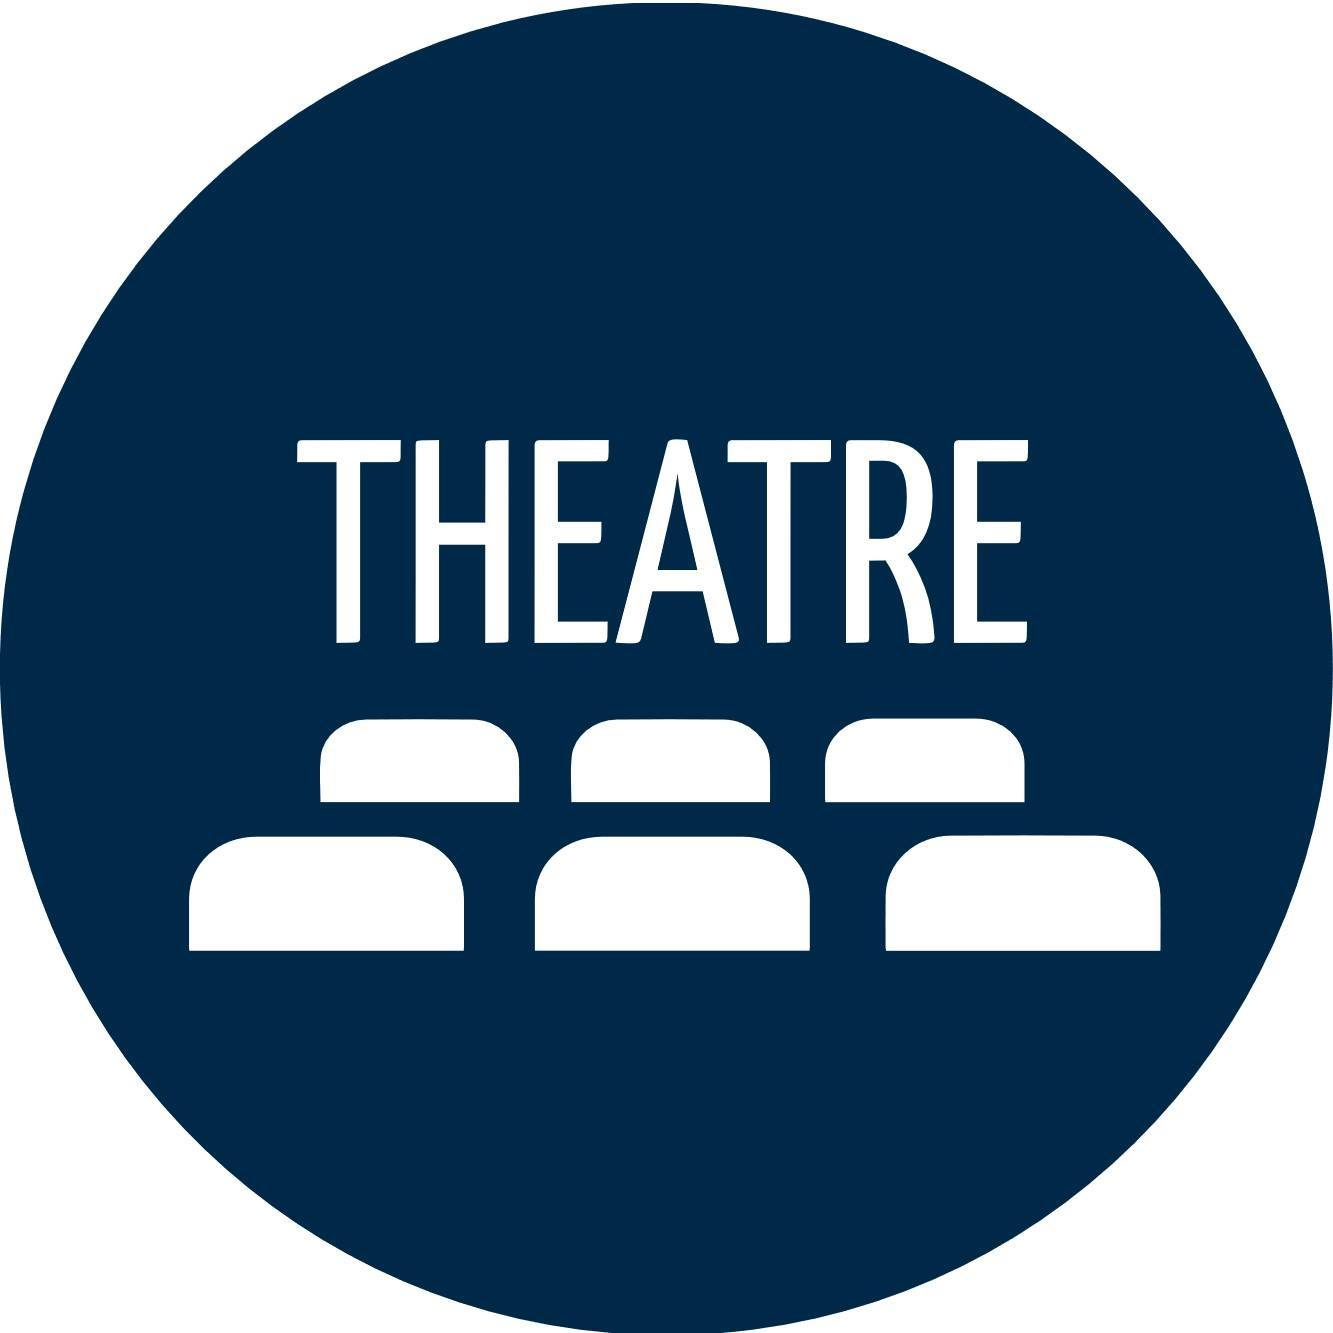 MCLA Theatre Logo. It is a blue square with white rectangles inside to give th appearance of theatre seating.